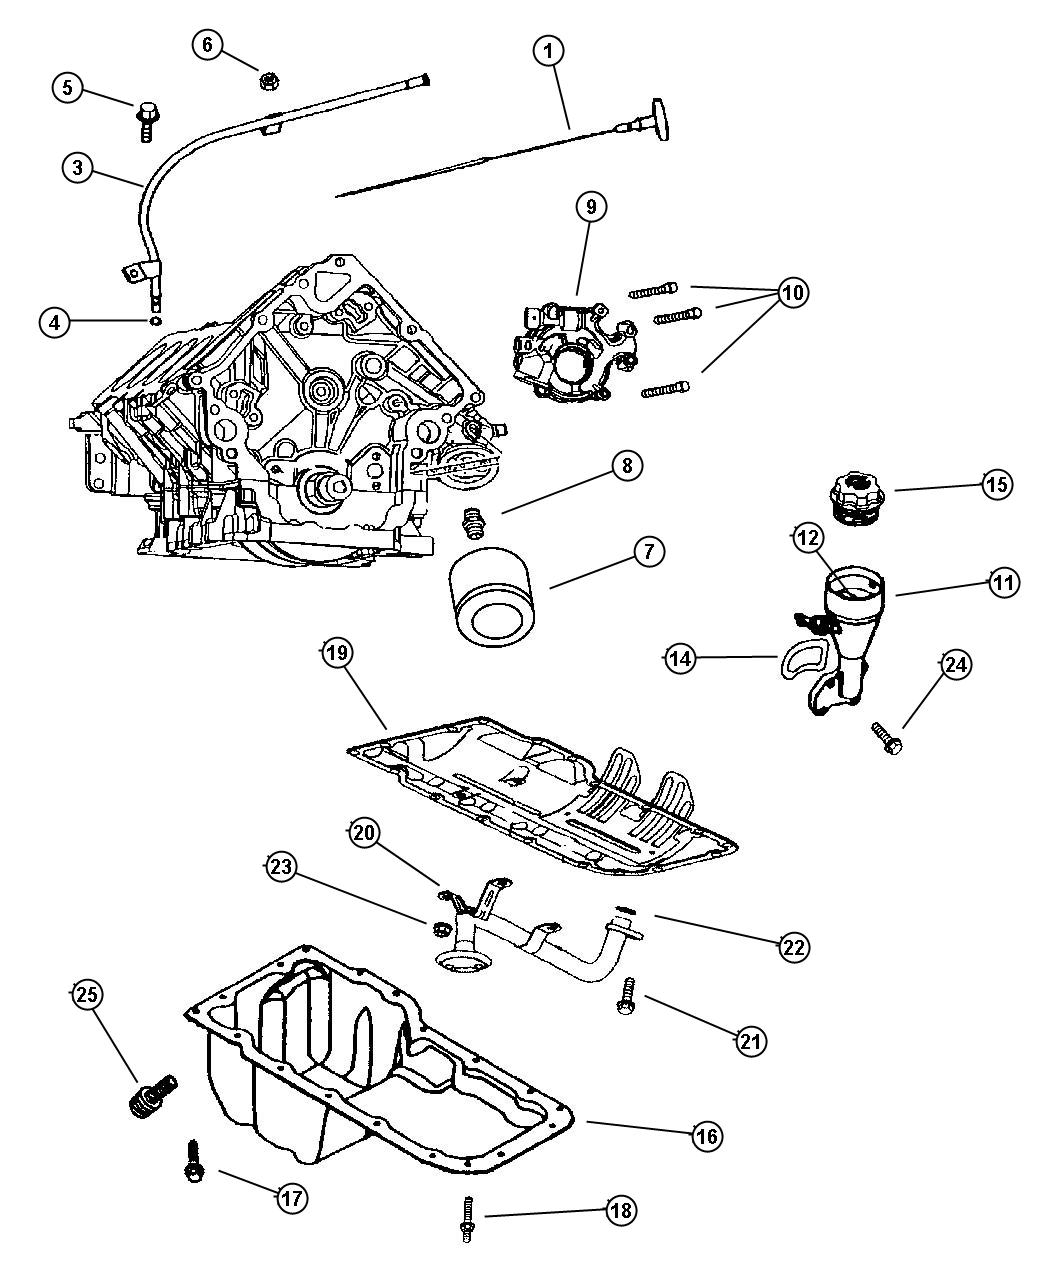 Engine Oiling, 4.7 [Engine- 4.7L V8 MPI].